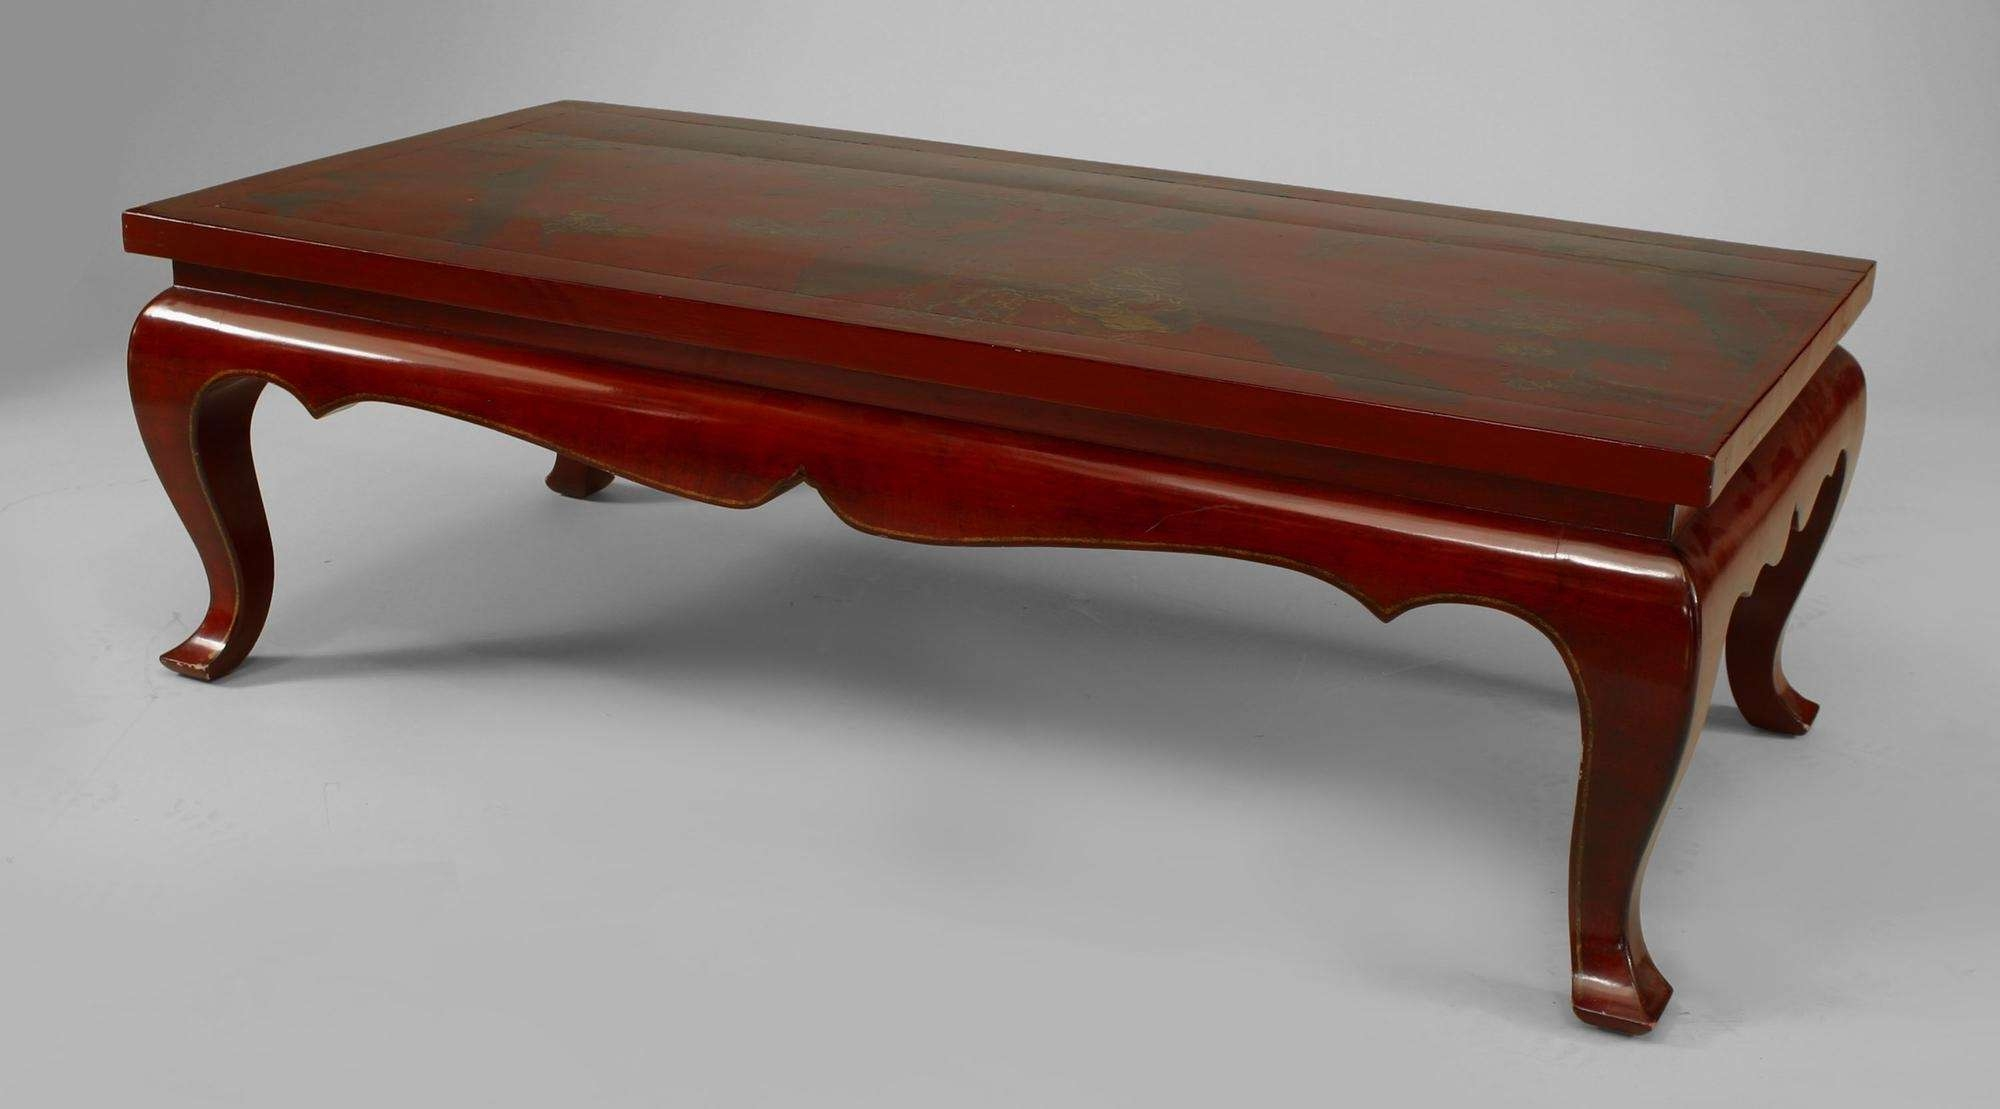 Coffee Tables : Small Chinese Antique Coffee Table United Kingdom Pertaining To Most Popular Chinese Coffee Tables (View 8 of 20)